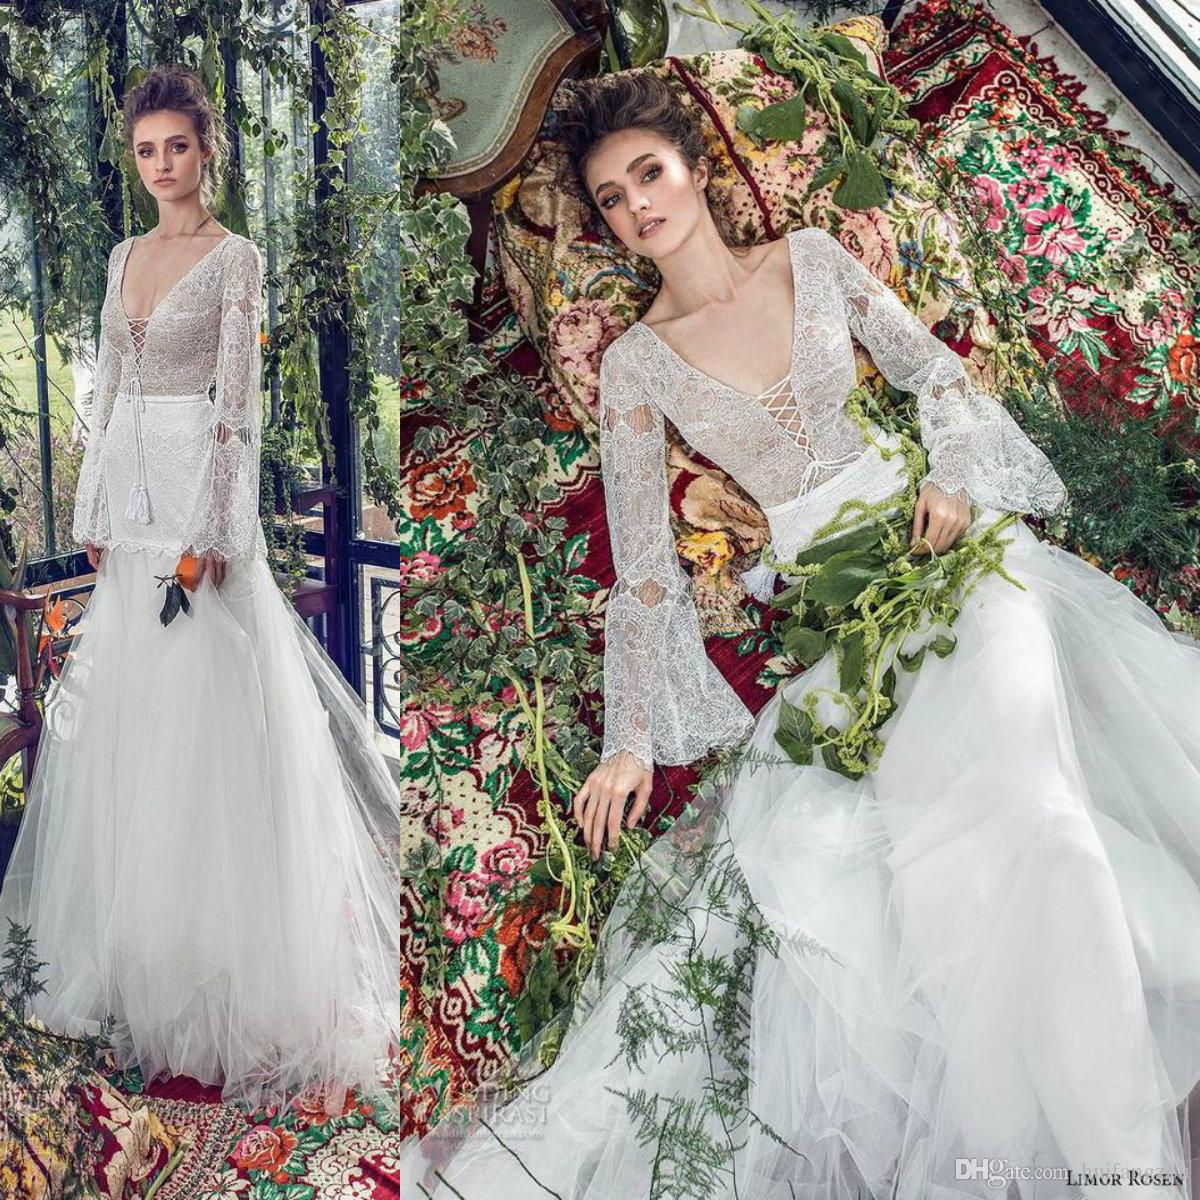 237f53711f Discount 2019 Spring Wedding Dresses Limor Rosen Long Sleeve Lace V Neck  Bohemia Wedding Dress Backless Tulle Sweep Train Bridal Gowns Custom Made  Ivory ...